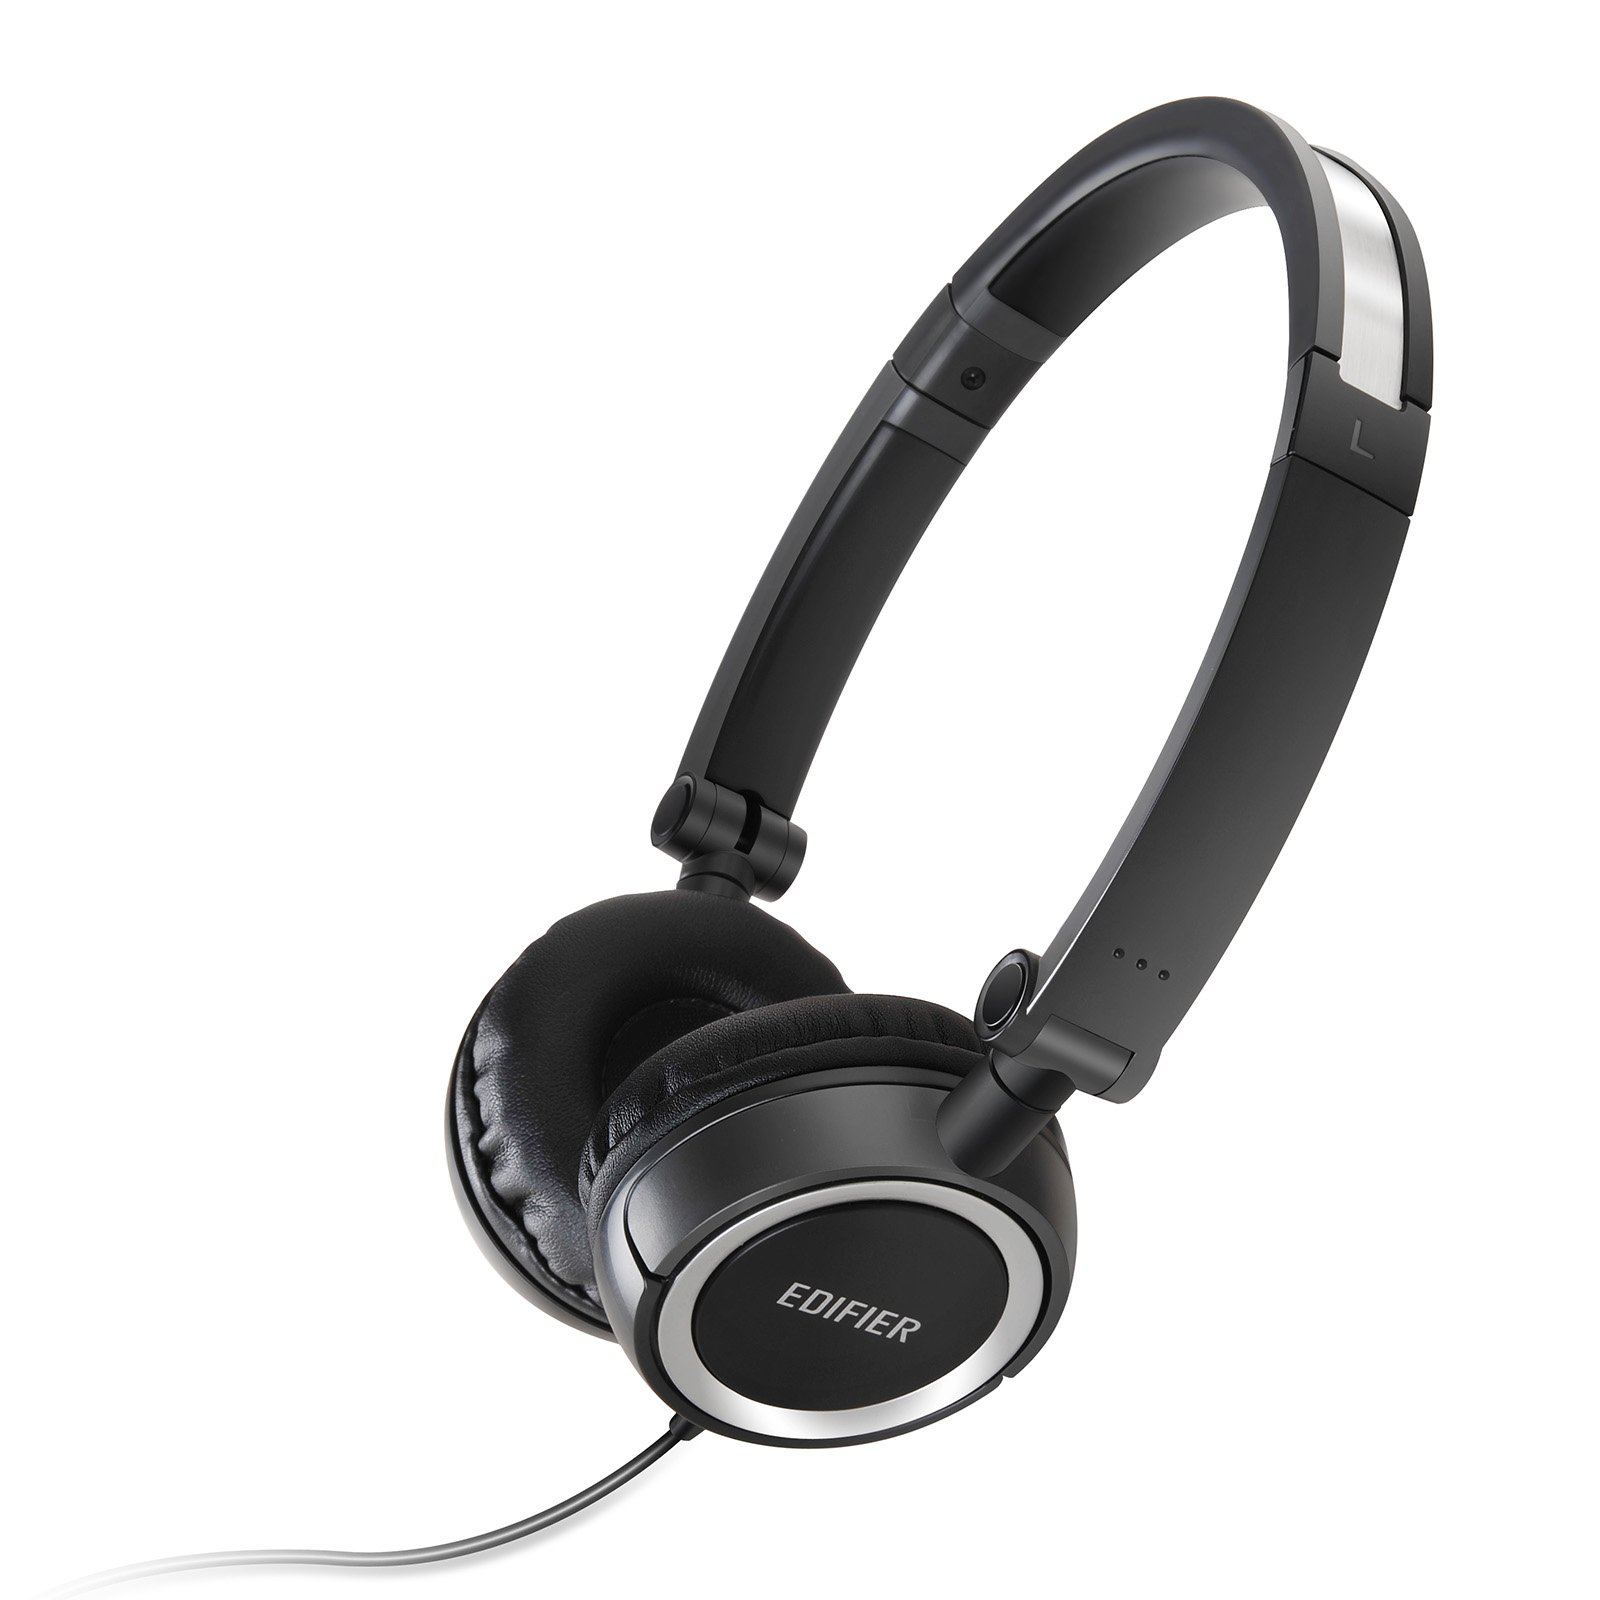 Edifier H650 Headphones - Hi-Fi On-Ear Foldable Noise-Isolating Stereo Headphone, Ultralight and Tri-fold Portable - Black by Edifier